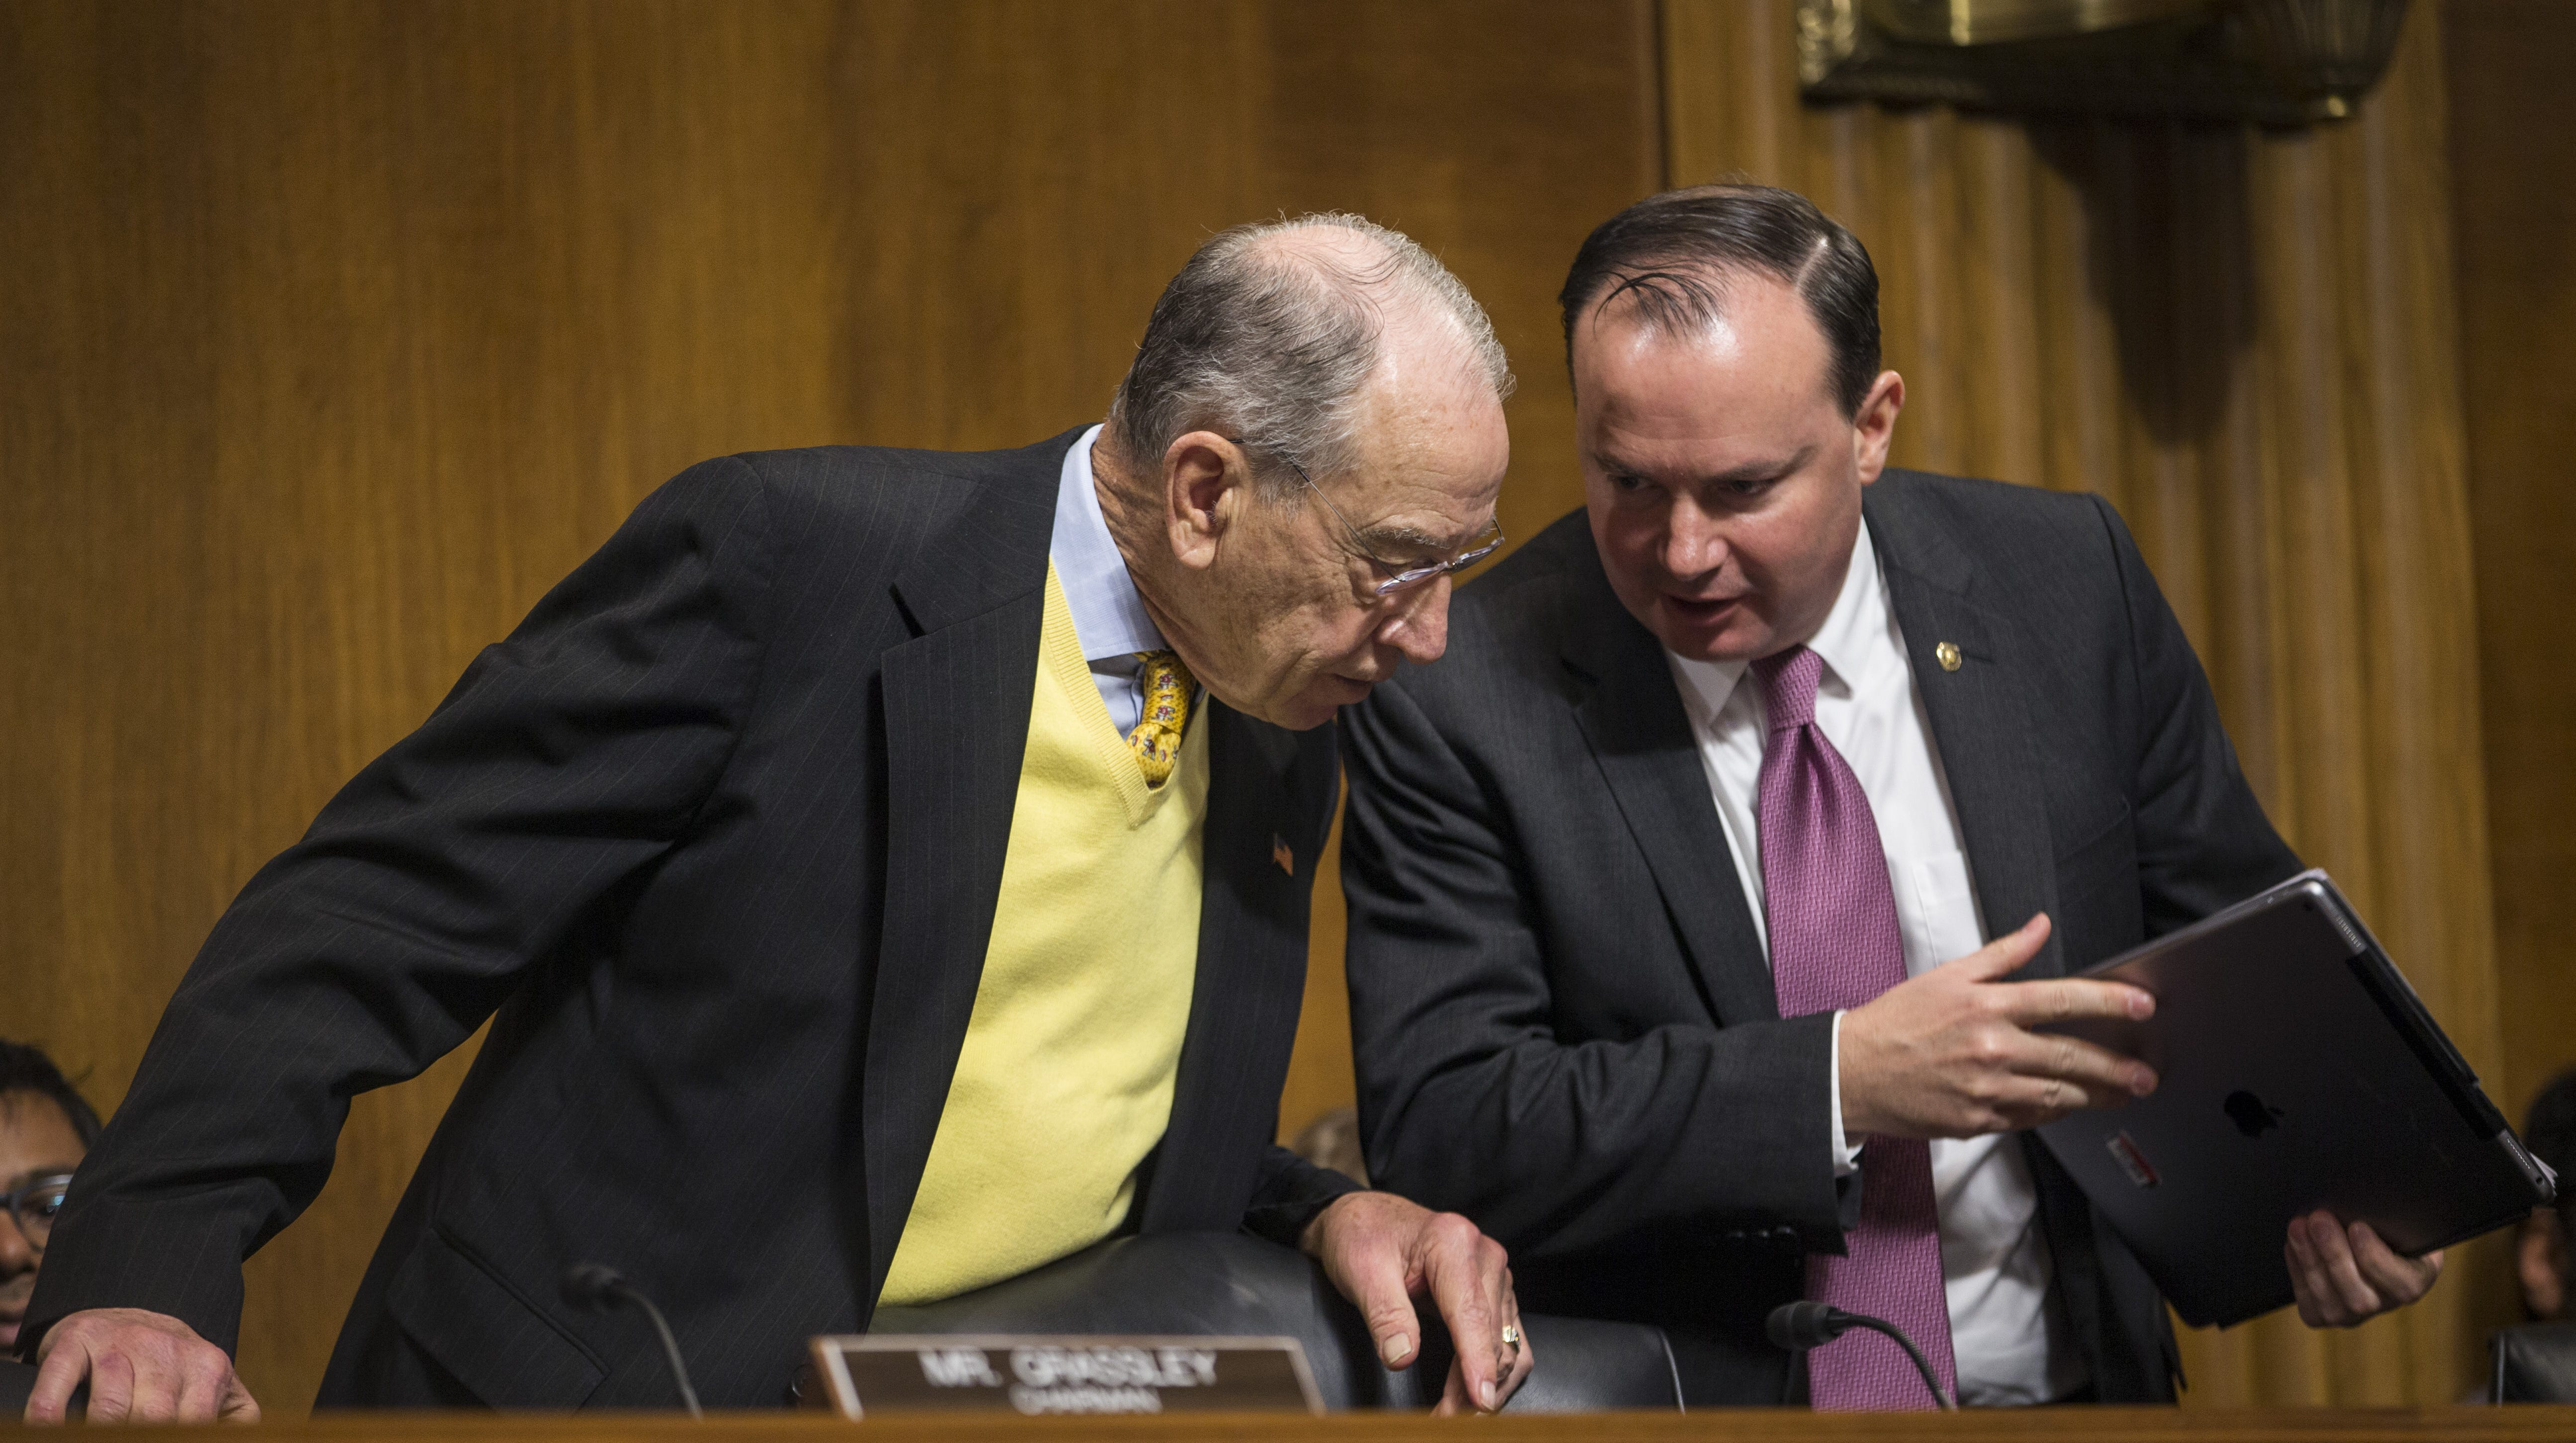 Sen. Mike Lee, R-Utah, speaks to Senate Judiciary Committee Chairman Sen. Chuck Grassley, R-Iowa, during a Senate Judiciary Committee hearing on December 11, 2018 in Washington, D.C. Lee and Grassley have been working to get a criminal justice reform bill over the finish line.